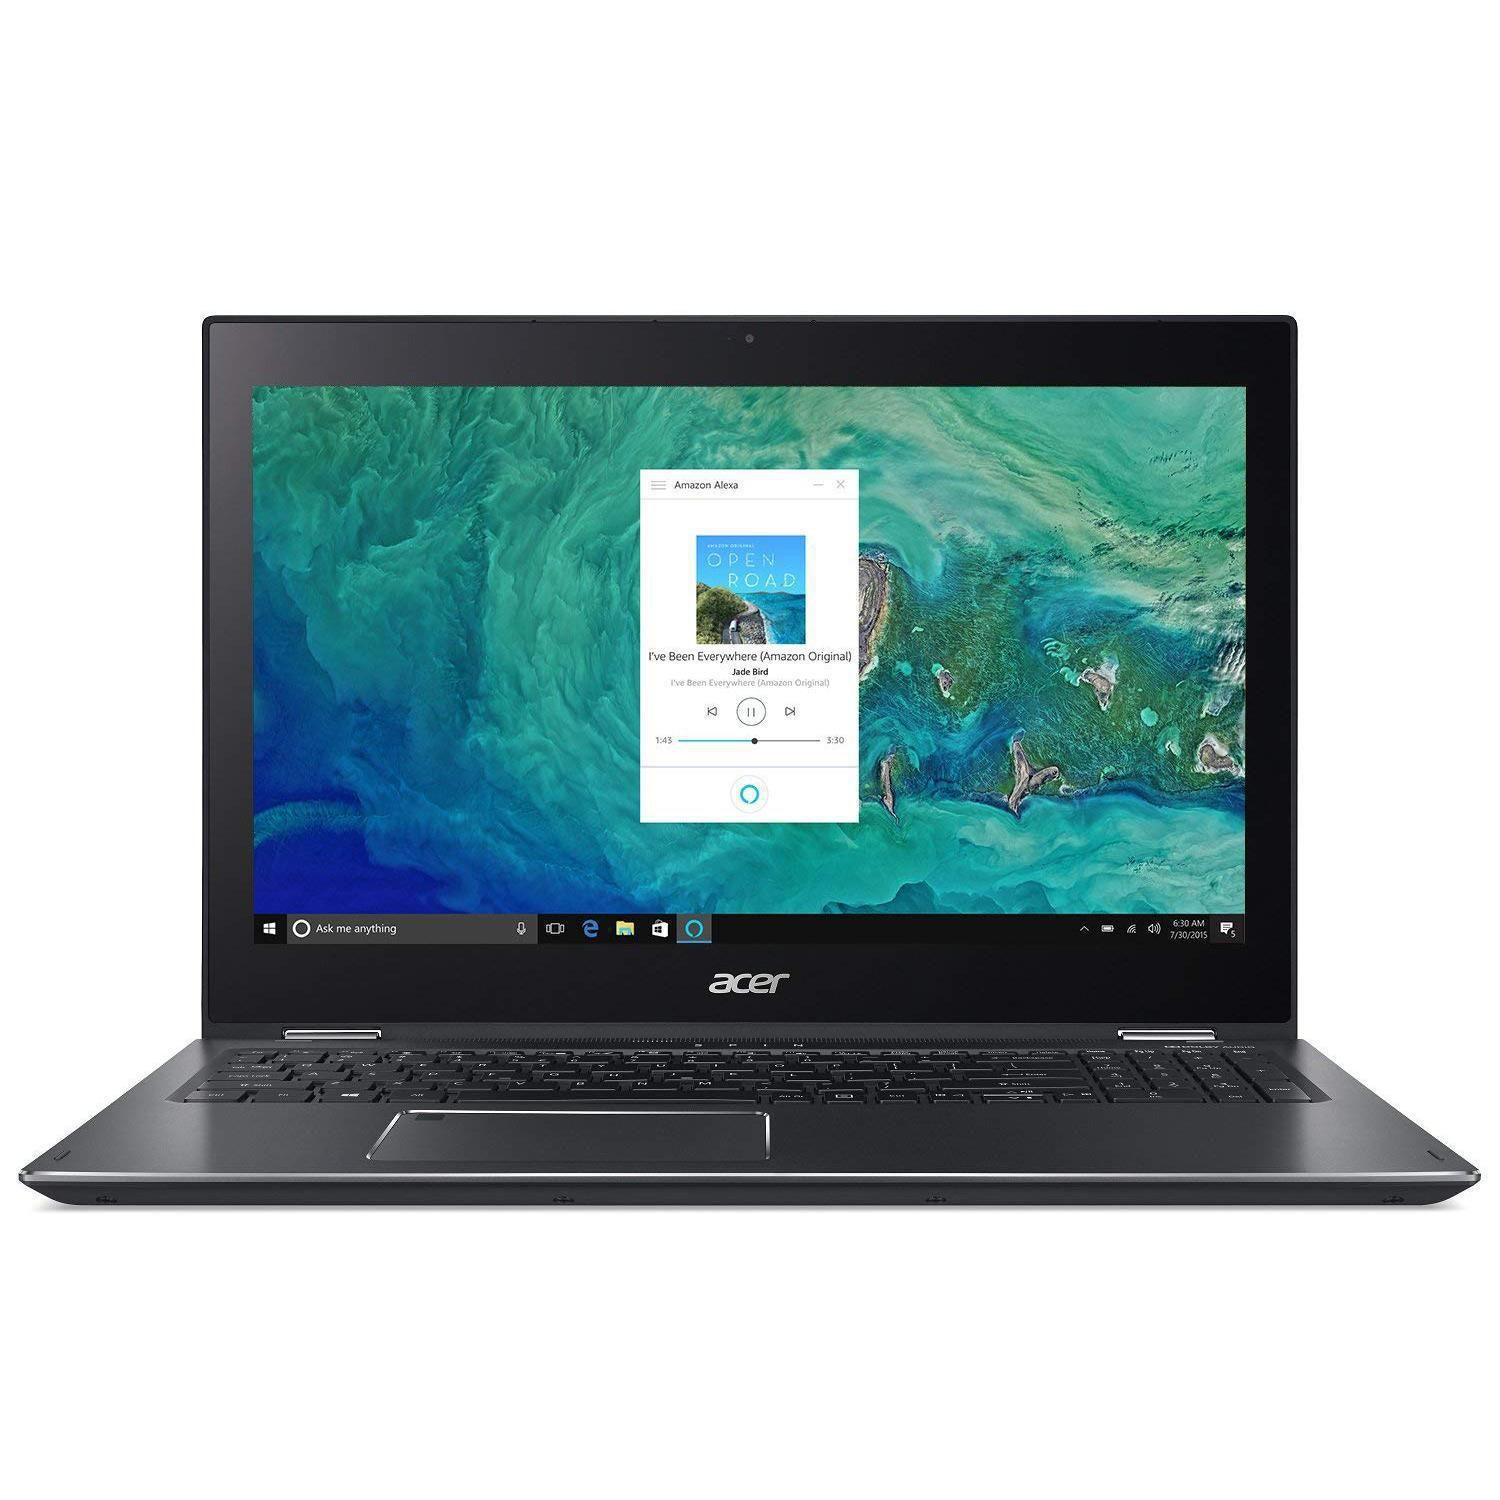 Acer Spin 5 15 6 Inch 2017 Core I7 8550u 8 Gb Hdd 1 Tb Best Gaming Laptop Hdd Cool Tech Gadgets